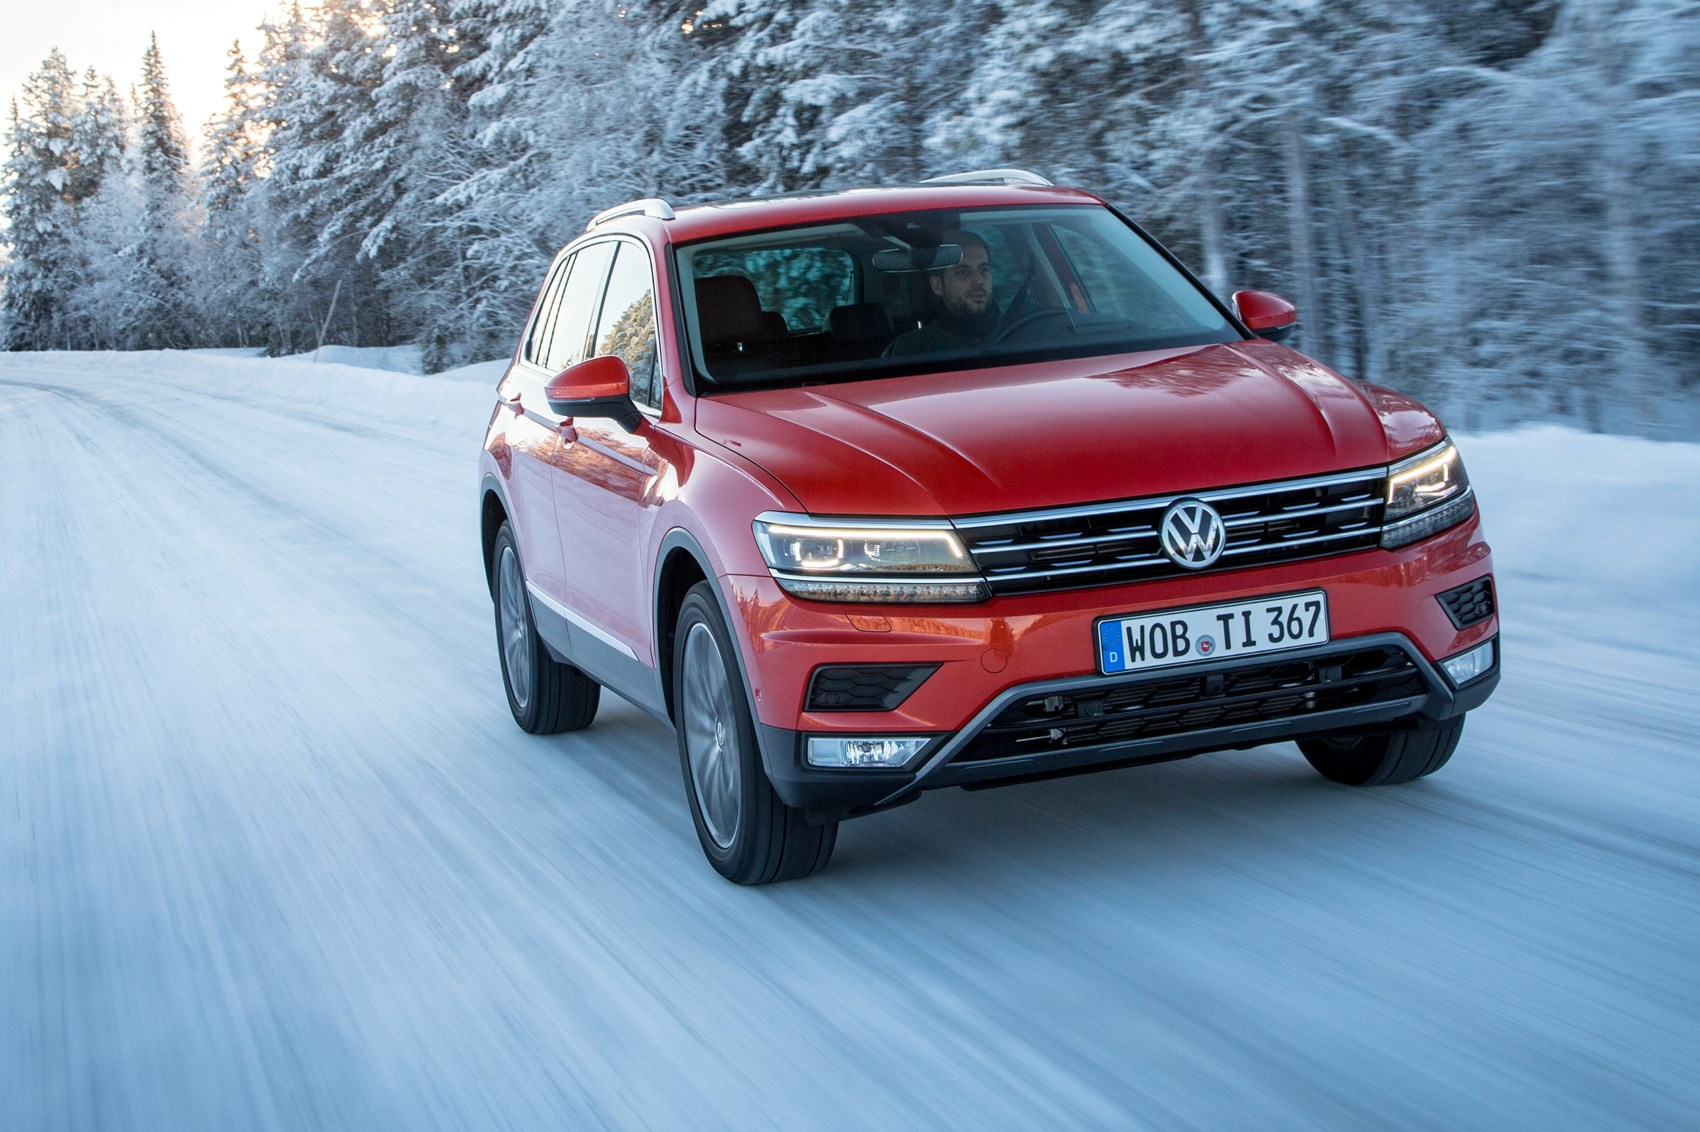 Ice to meet you: first off-road drive in the new 2016 VW Tiguan